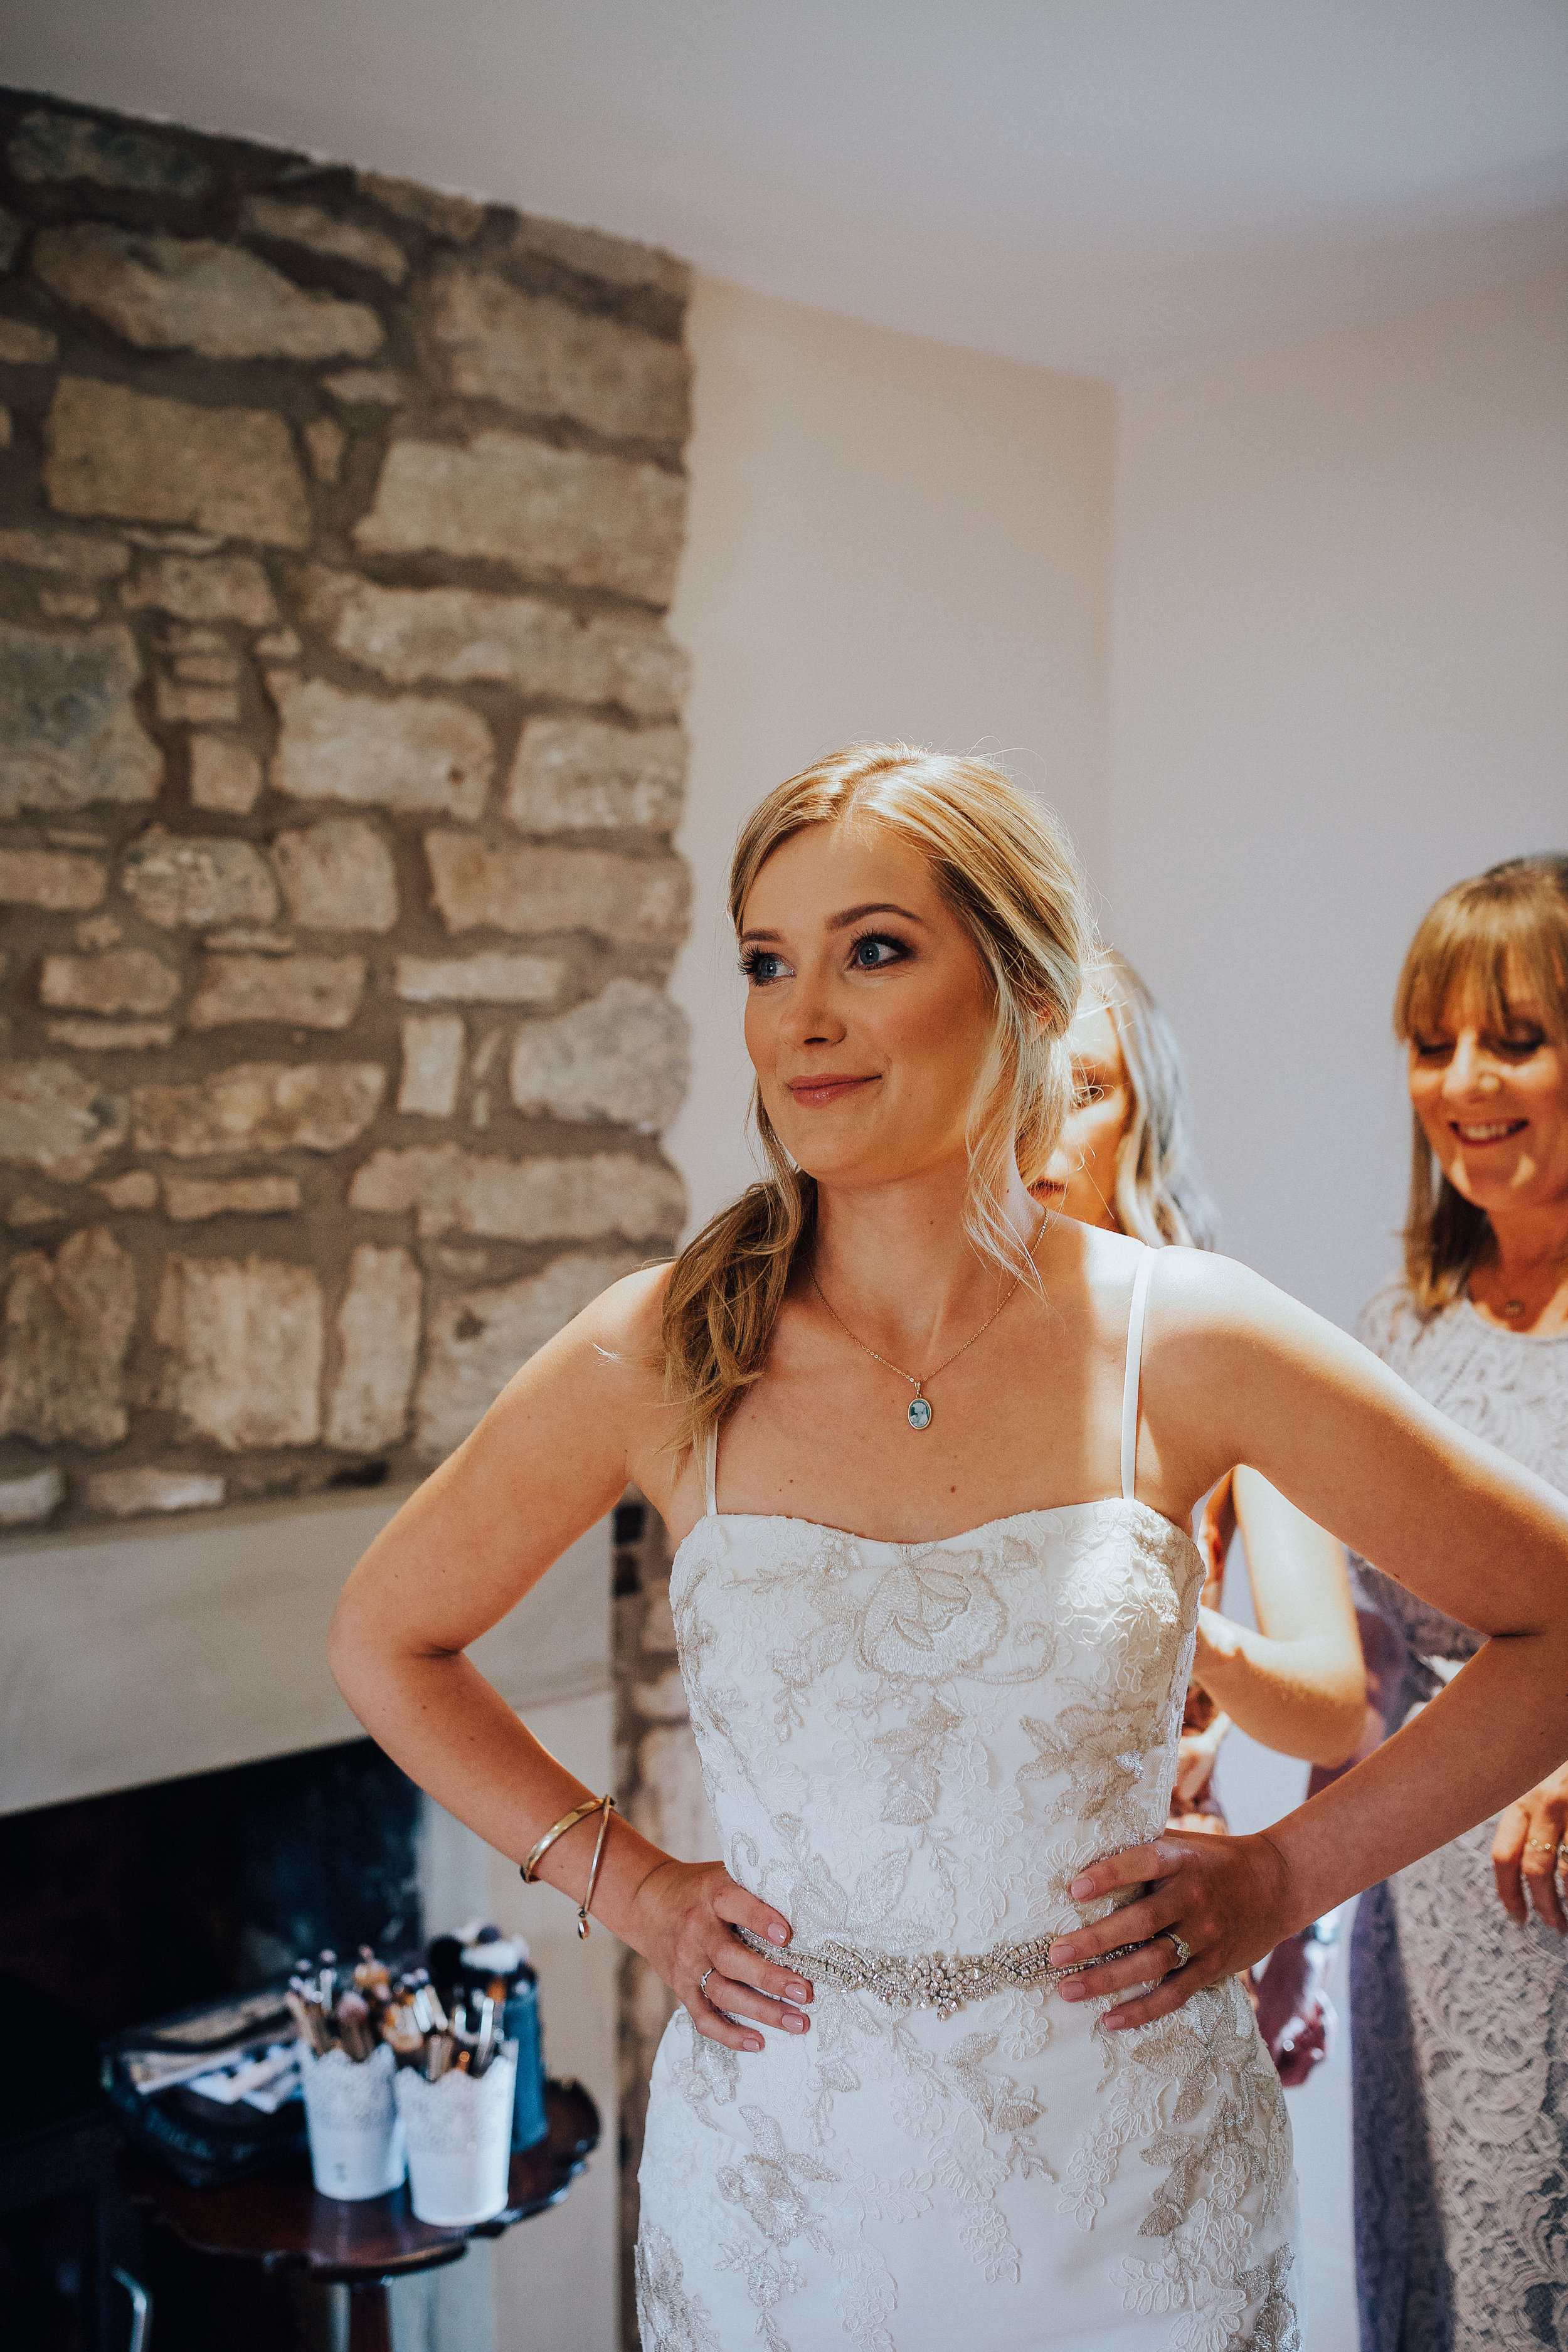 PJ_PHILLIPS_PHOTOGRAPHY_EDINBURGH_WEDDERBURN_BARNS_WEDDING_EDINBURGH_WEDDING_PHOTOGRAPHER_54.jpg